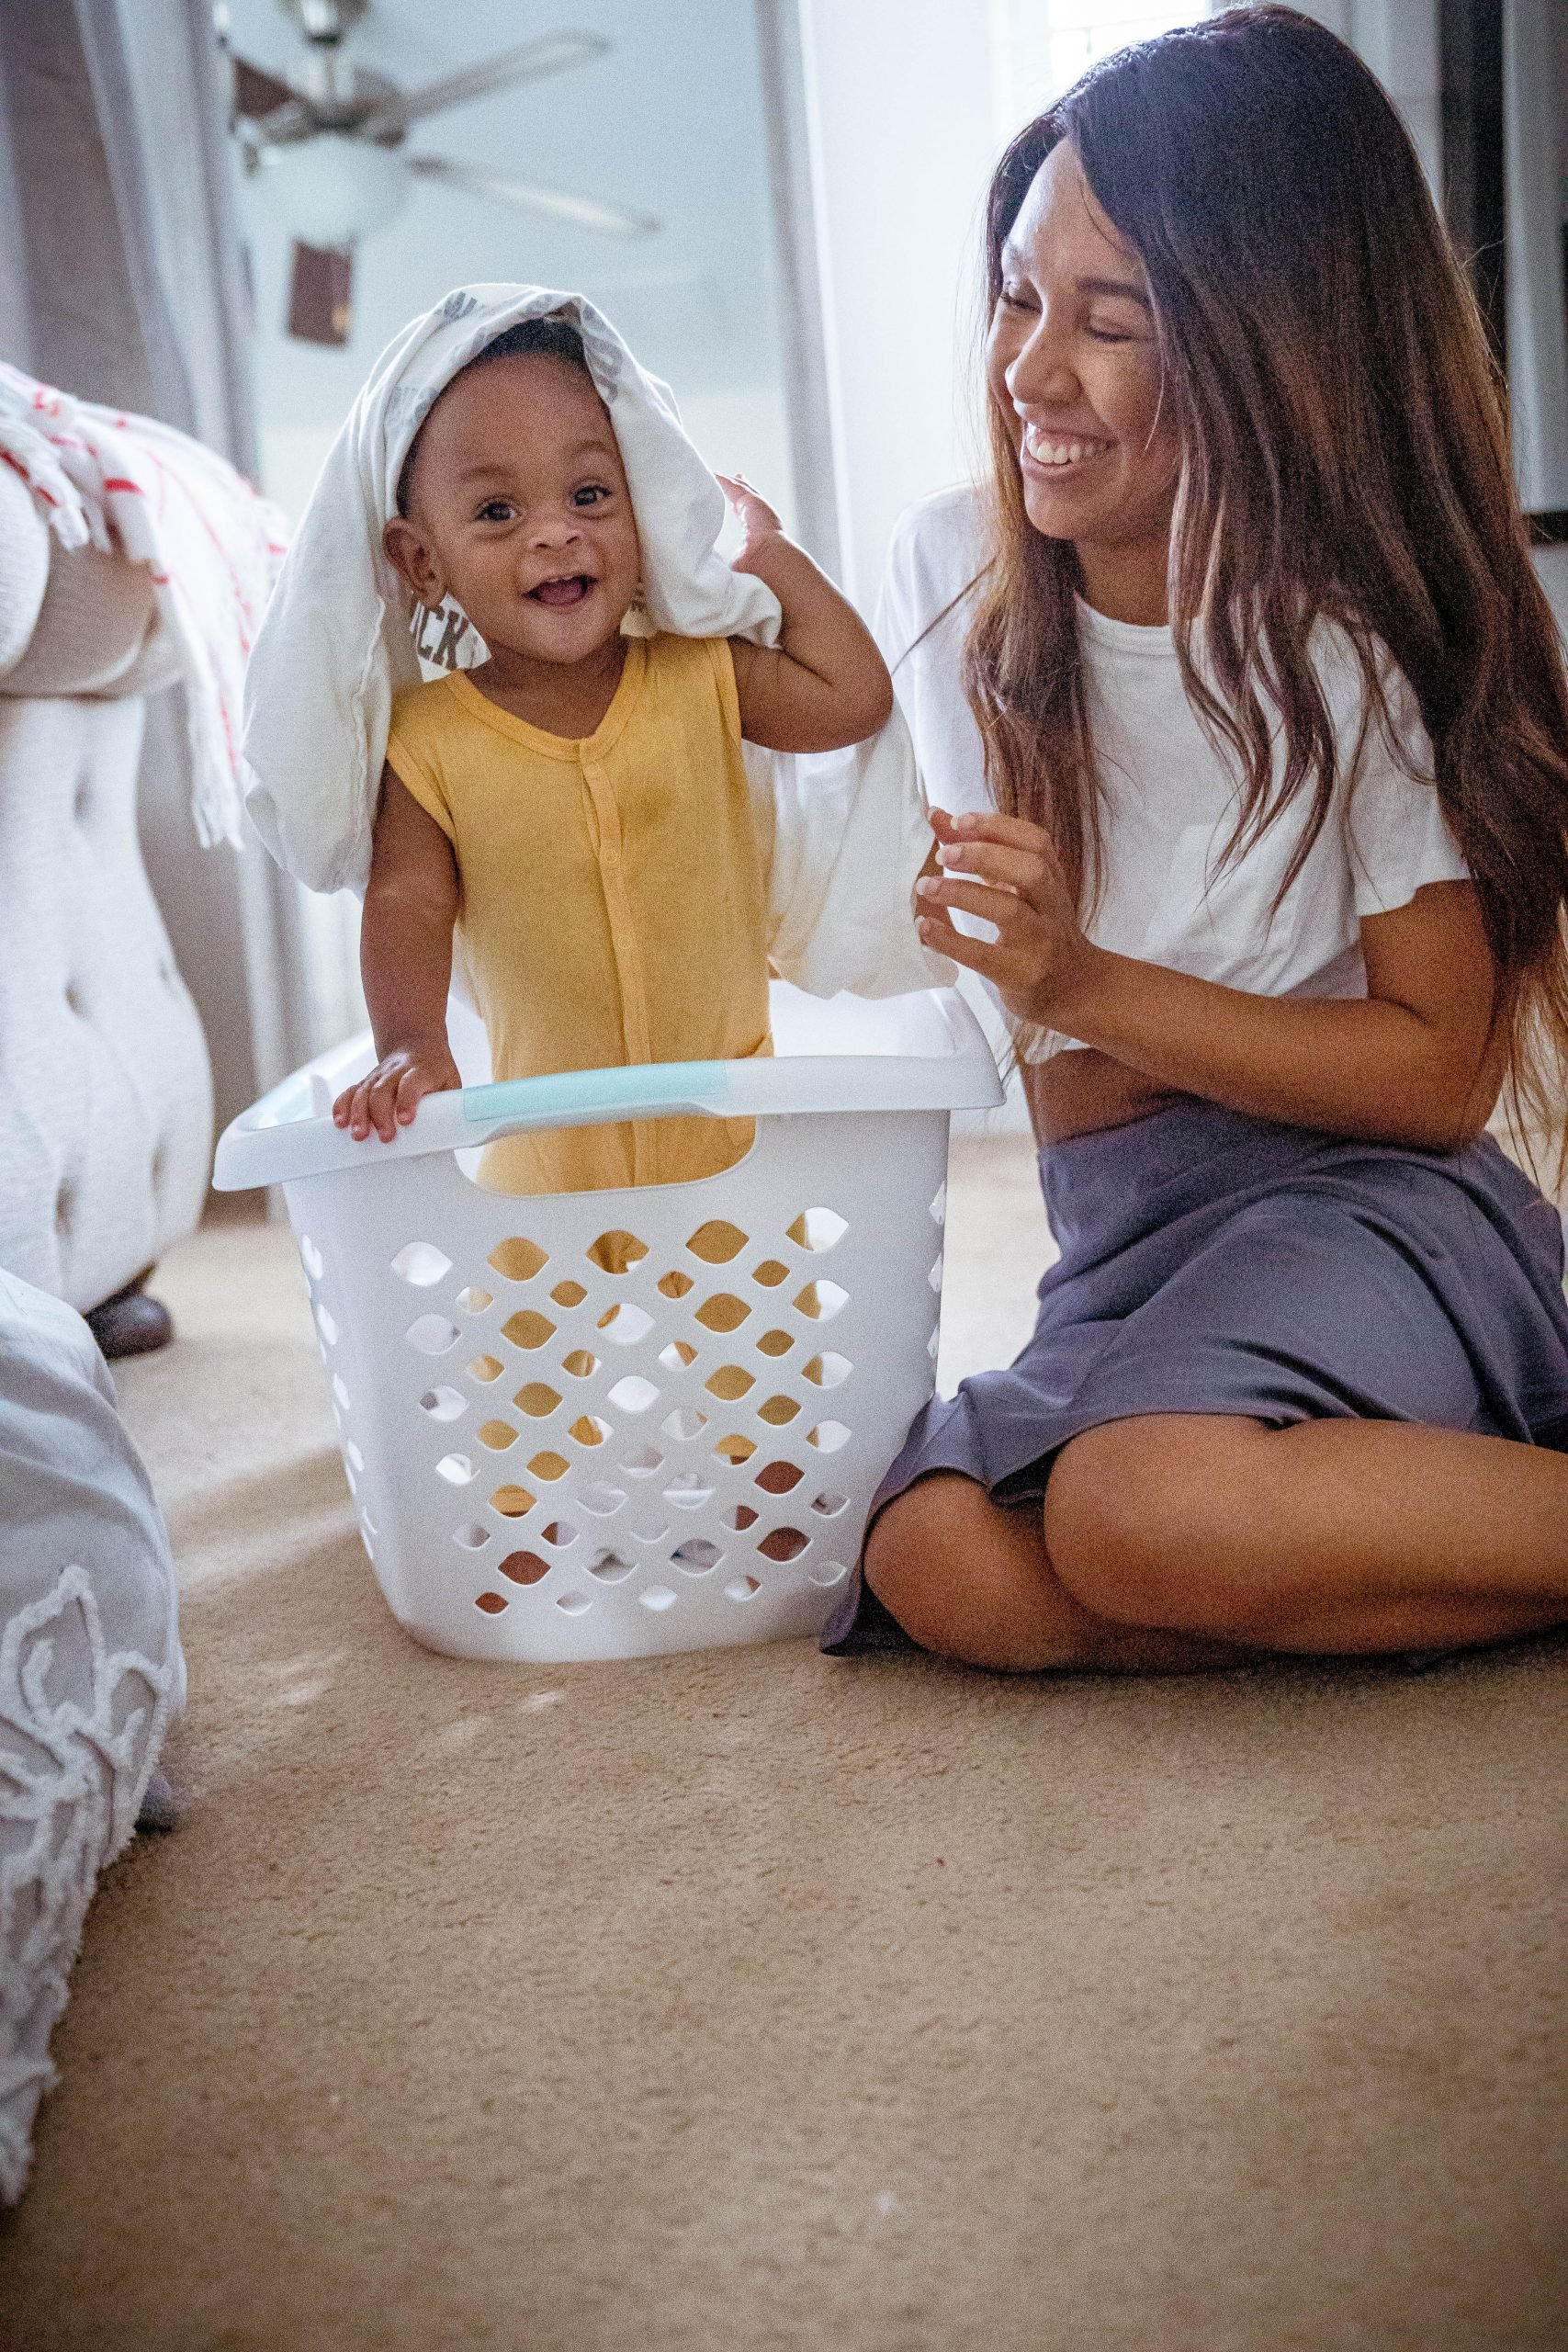 LivingLesh using ivory laundry detergent for babies with sensative skin